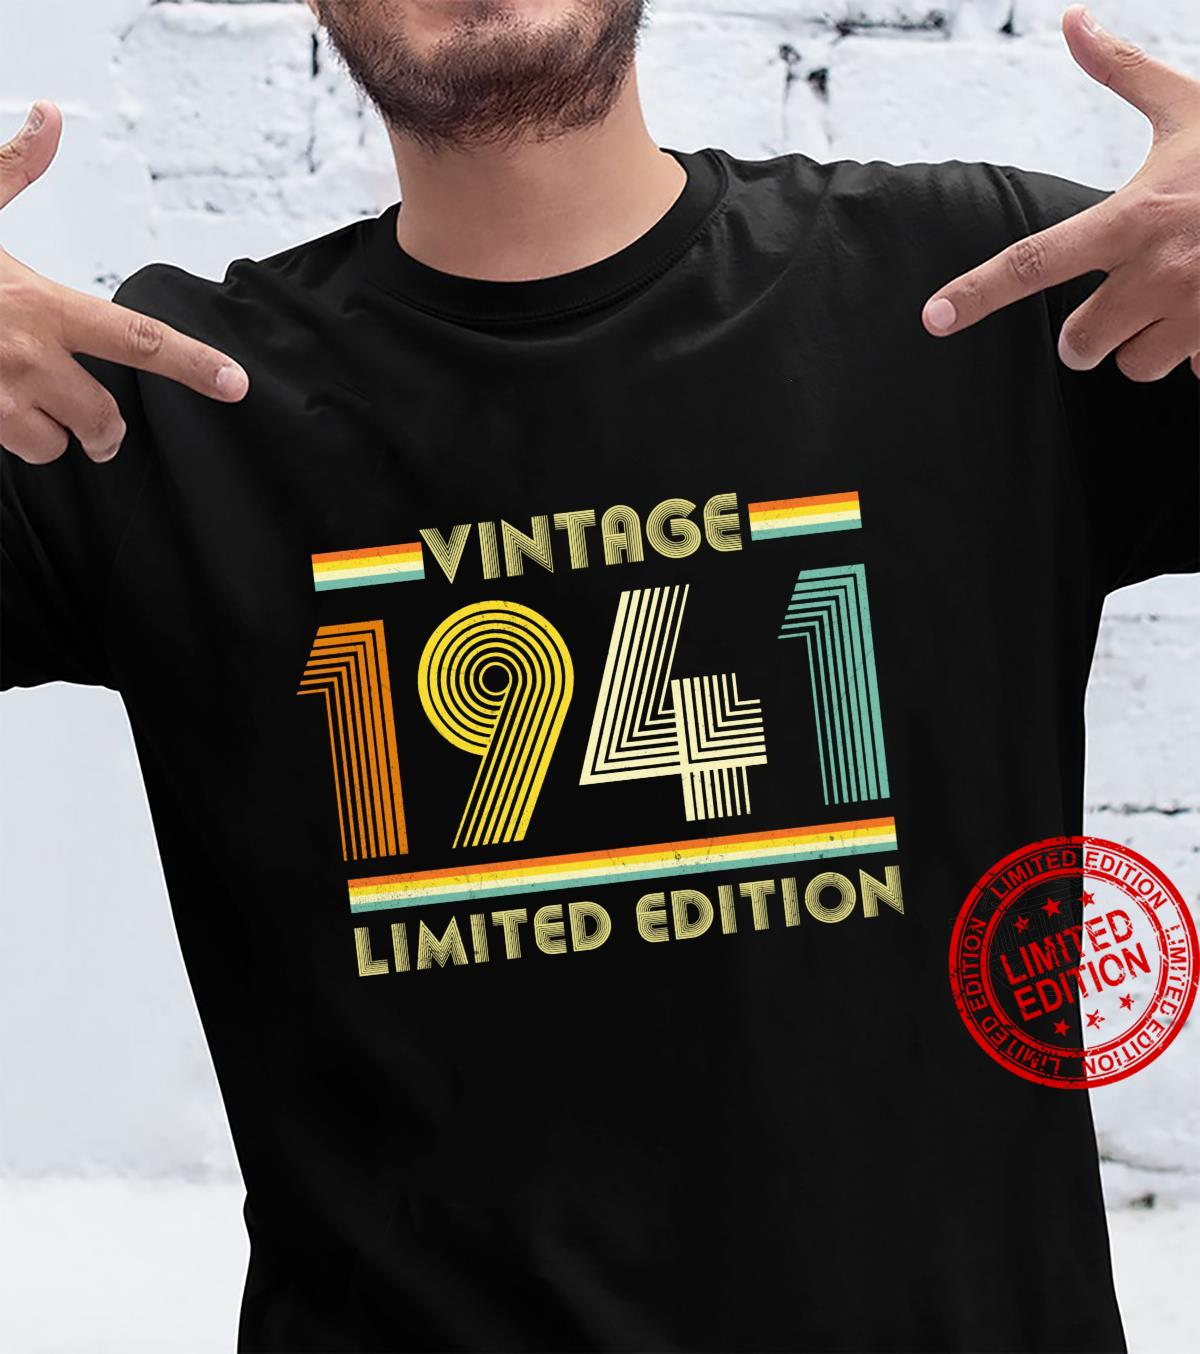 Vintage 1941 Shirt 80th Birthday for 80 Years Old Retro Shirt